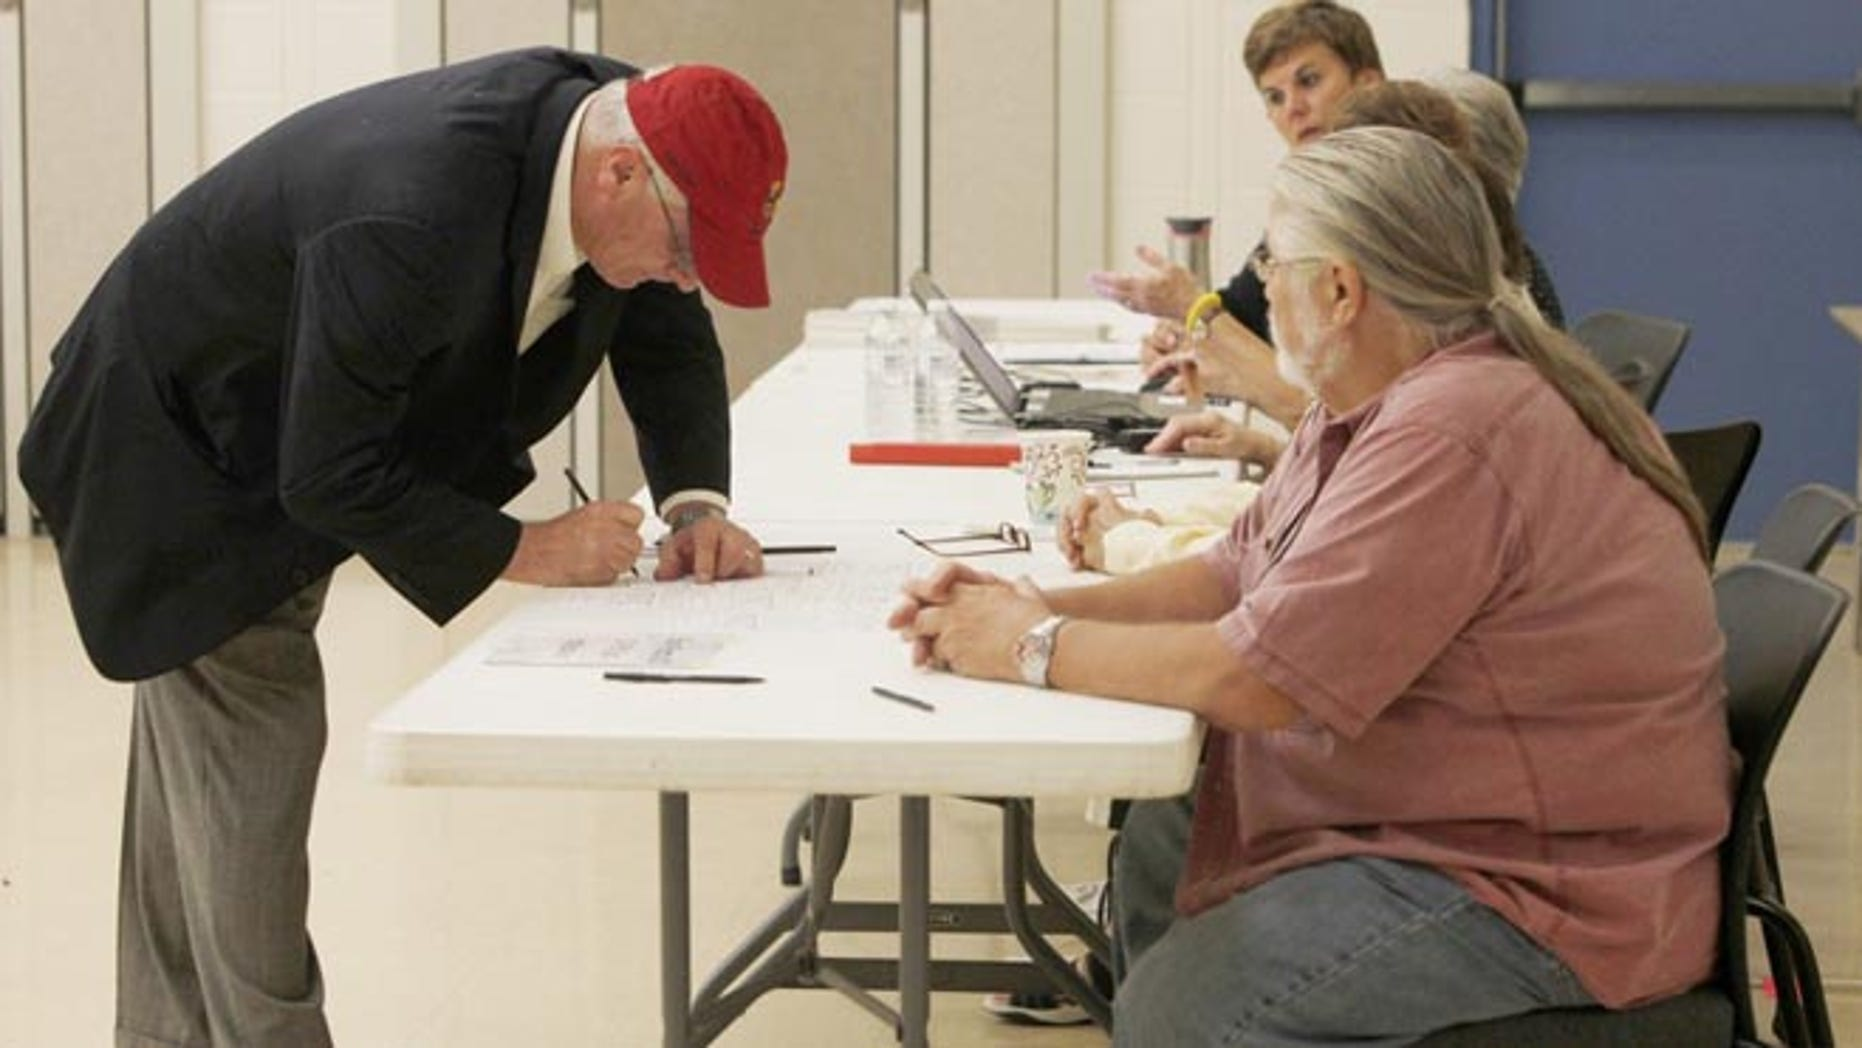 Aug. 5, 2014: Rep. Kerry Bentivolio signs in to vote at Johnson Elementary School in Milford, Mich.